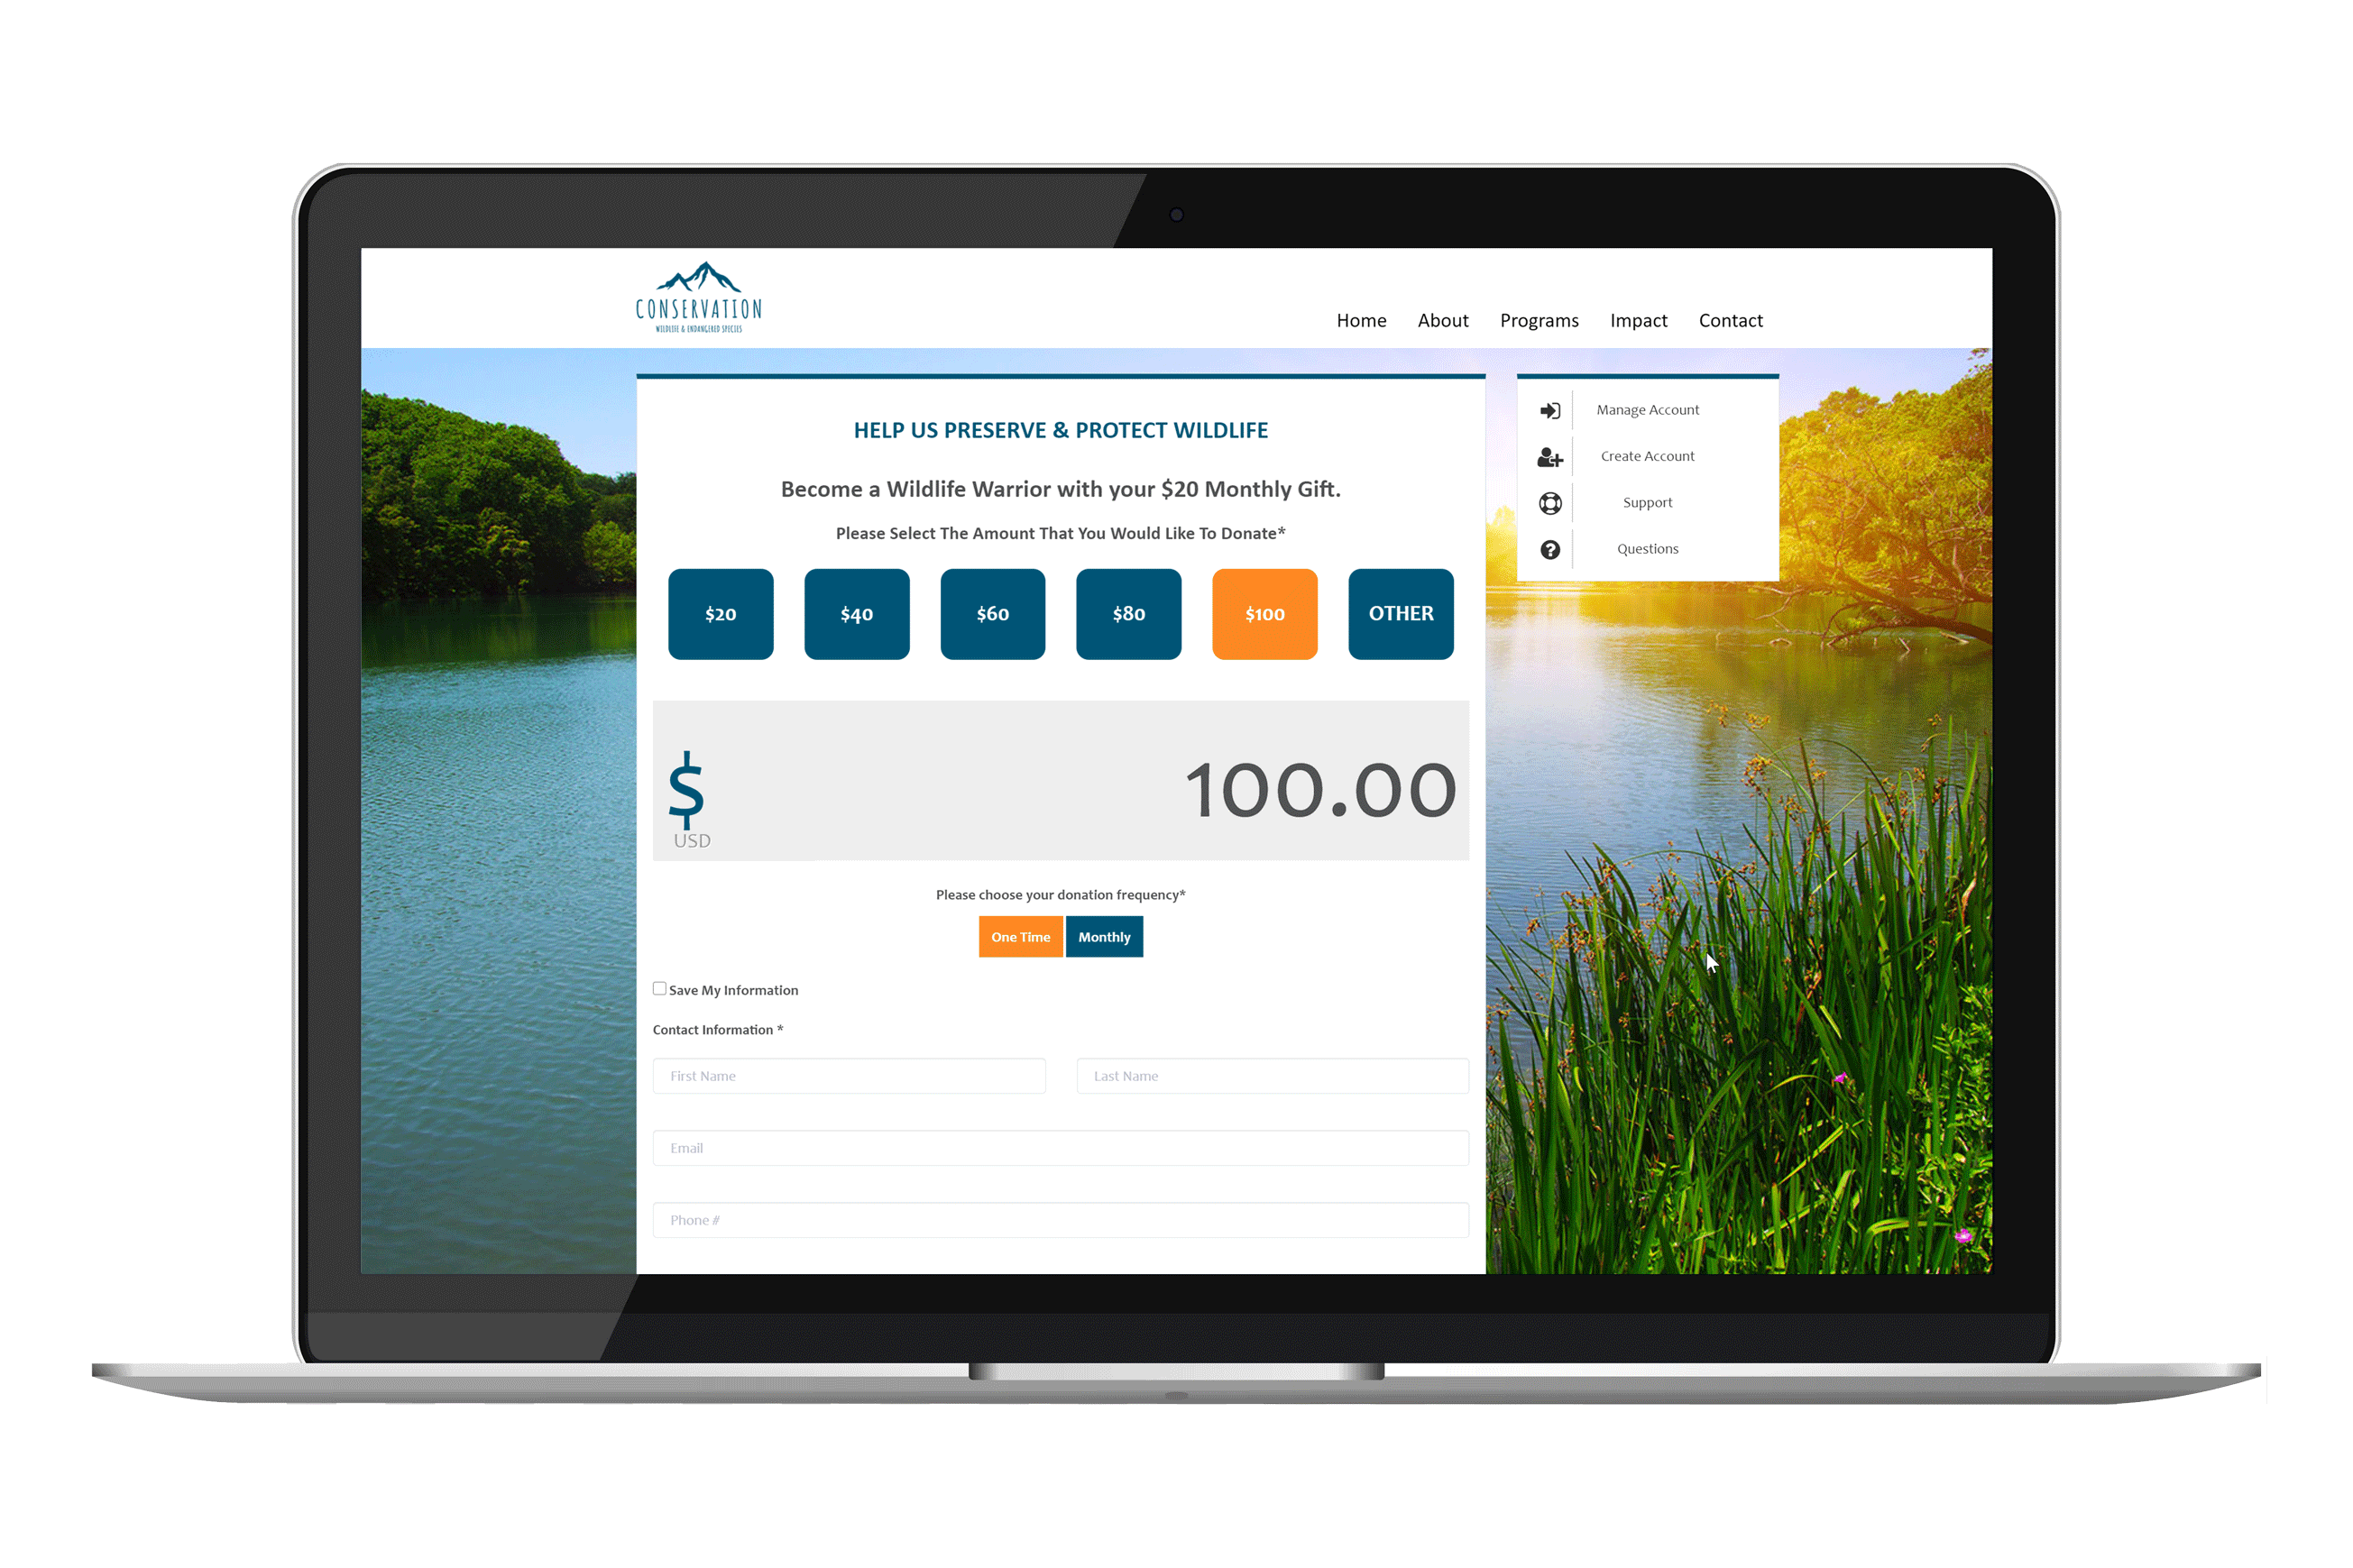 Reason Funding Online Giving Page For Conservation Focused Nonprofit